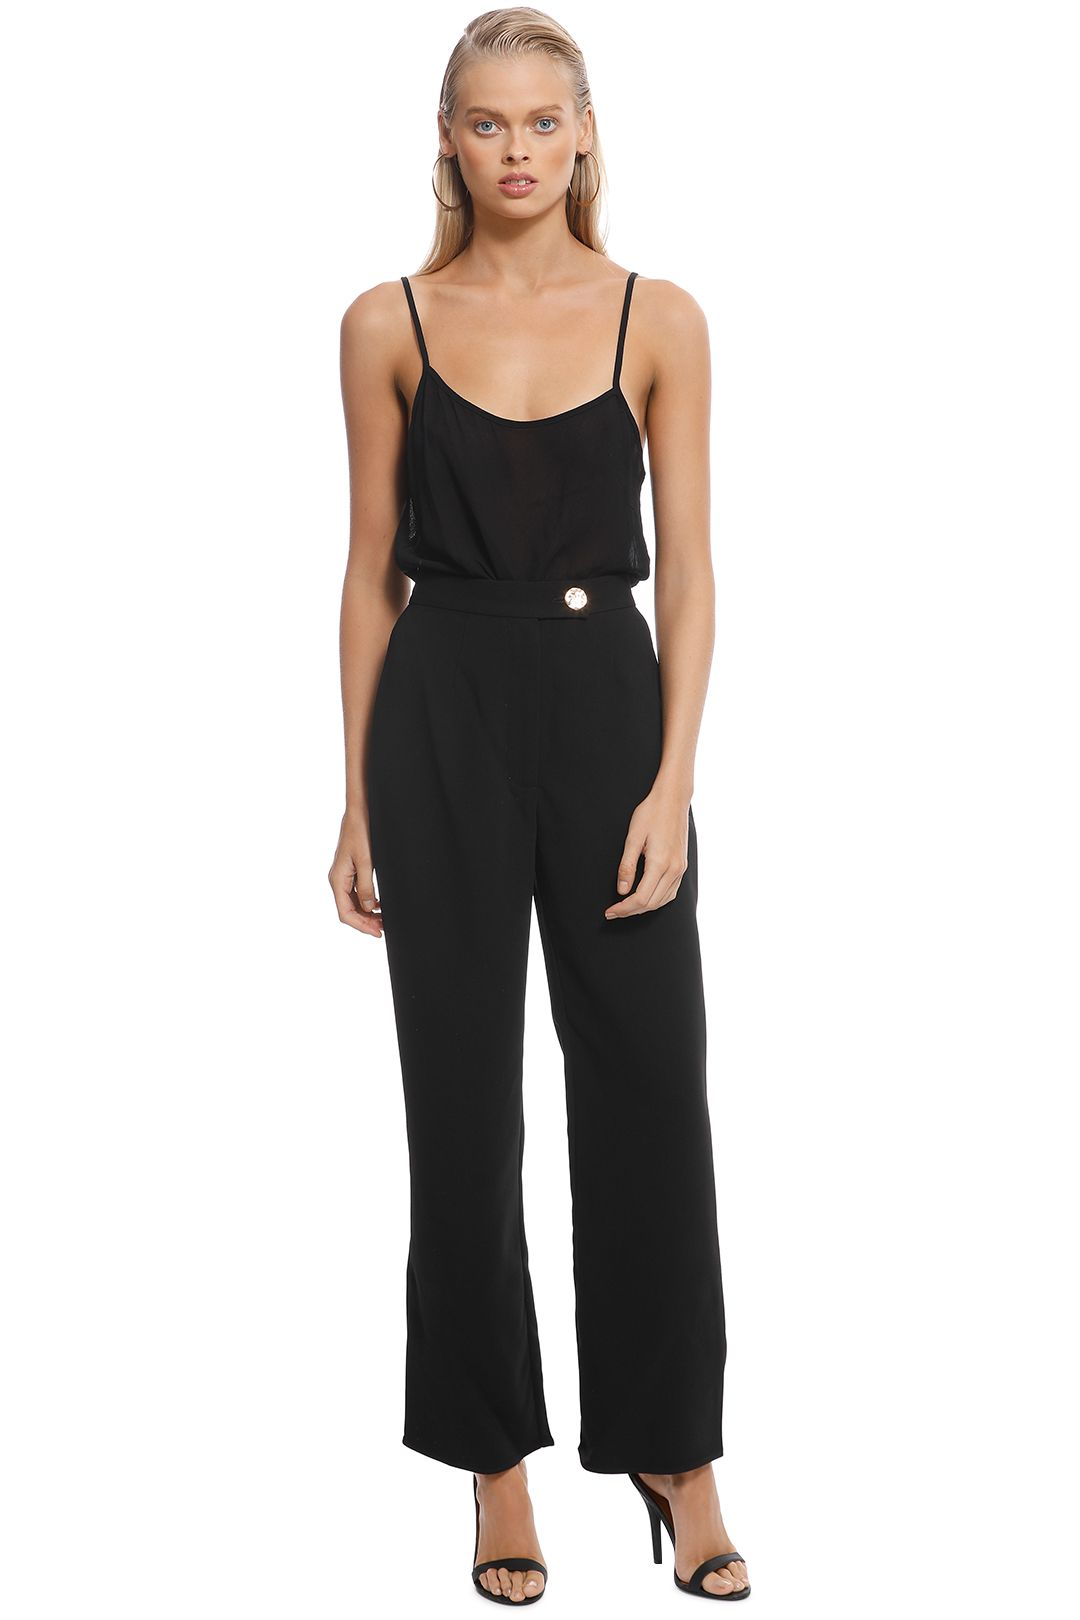 Keepsake The Label - Follower Pant in Black - Front